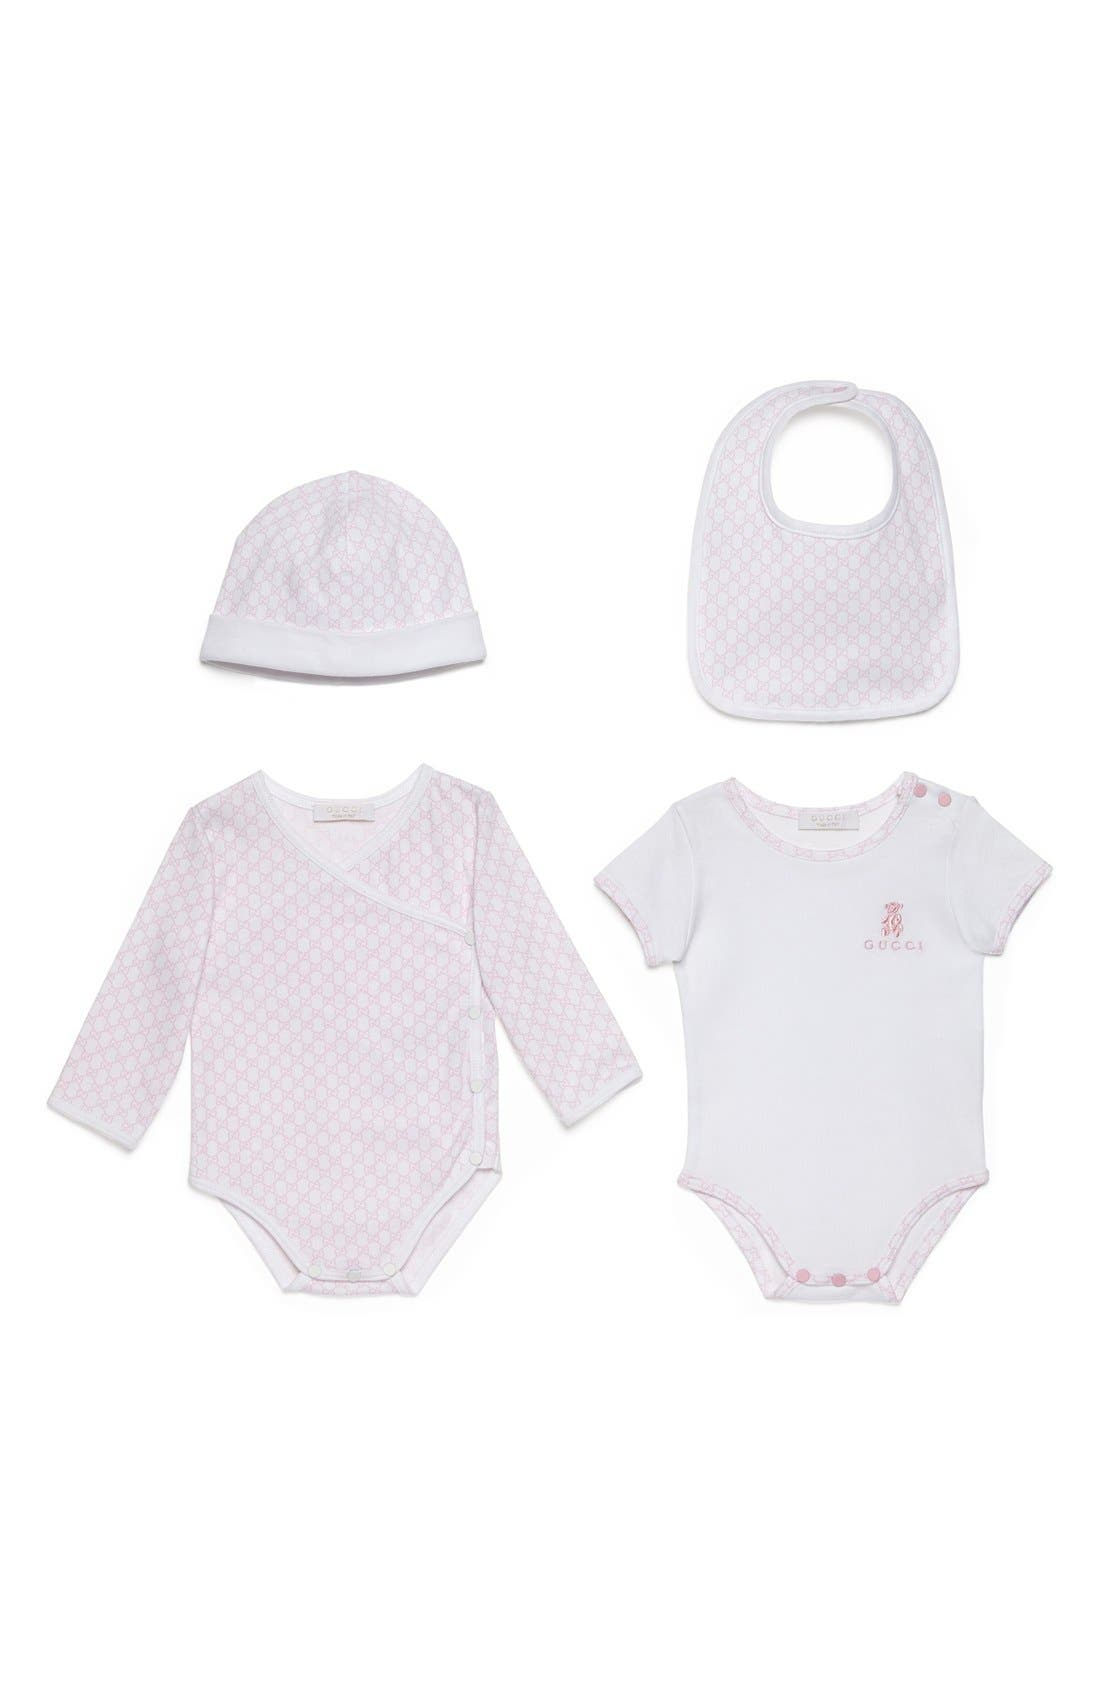 Alternate Image 1 Selected - Gucci Short Sleeve Bodysuit, Long Sleeve Bodysuit, Hat & Bib Set (Baby)